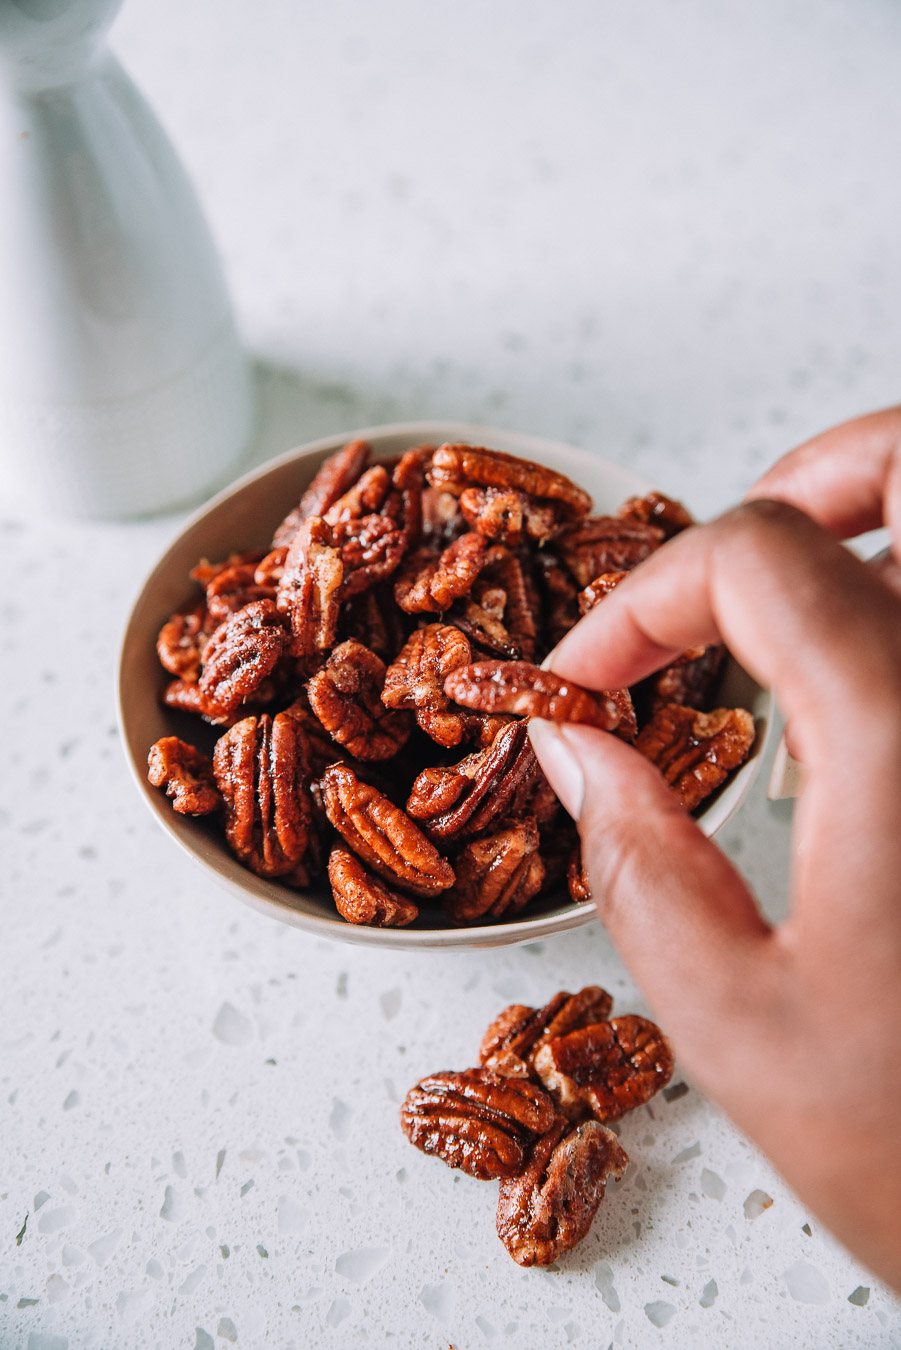 Hand grabbing candied pecans in a bowl.